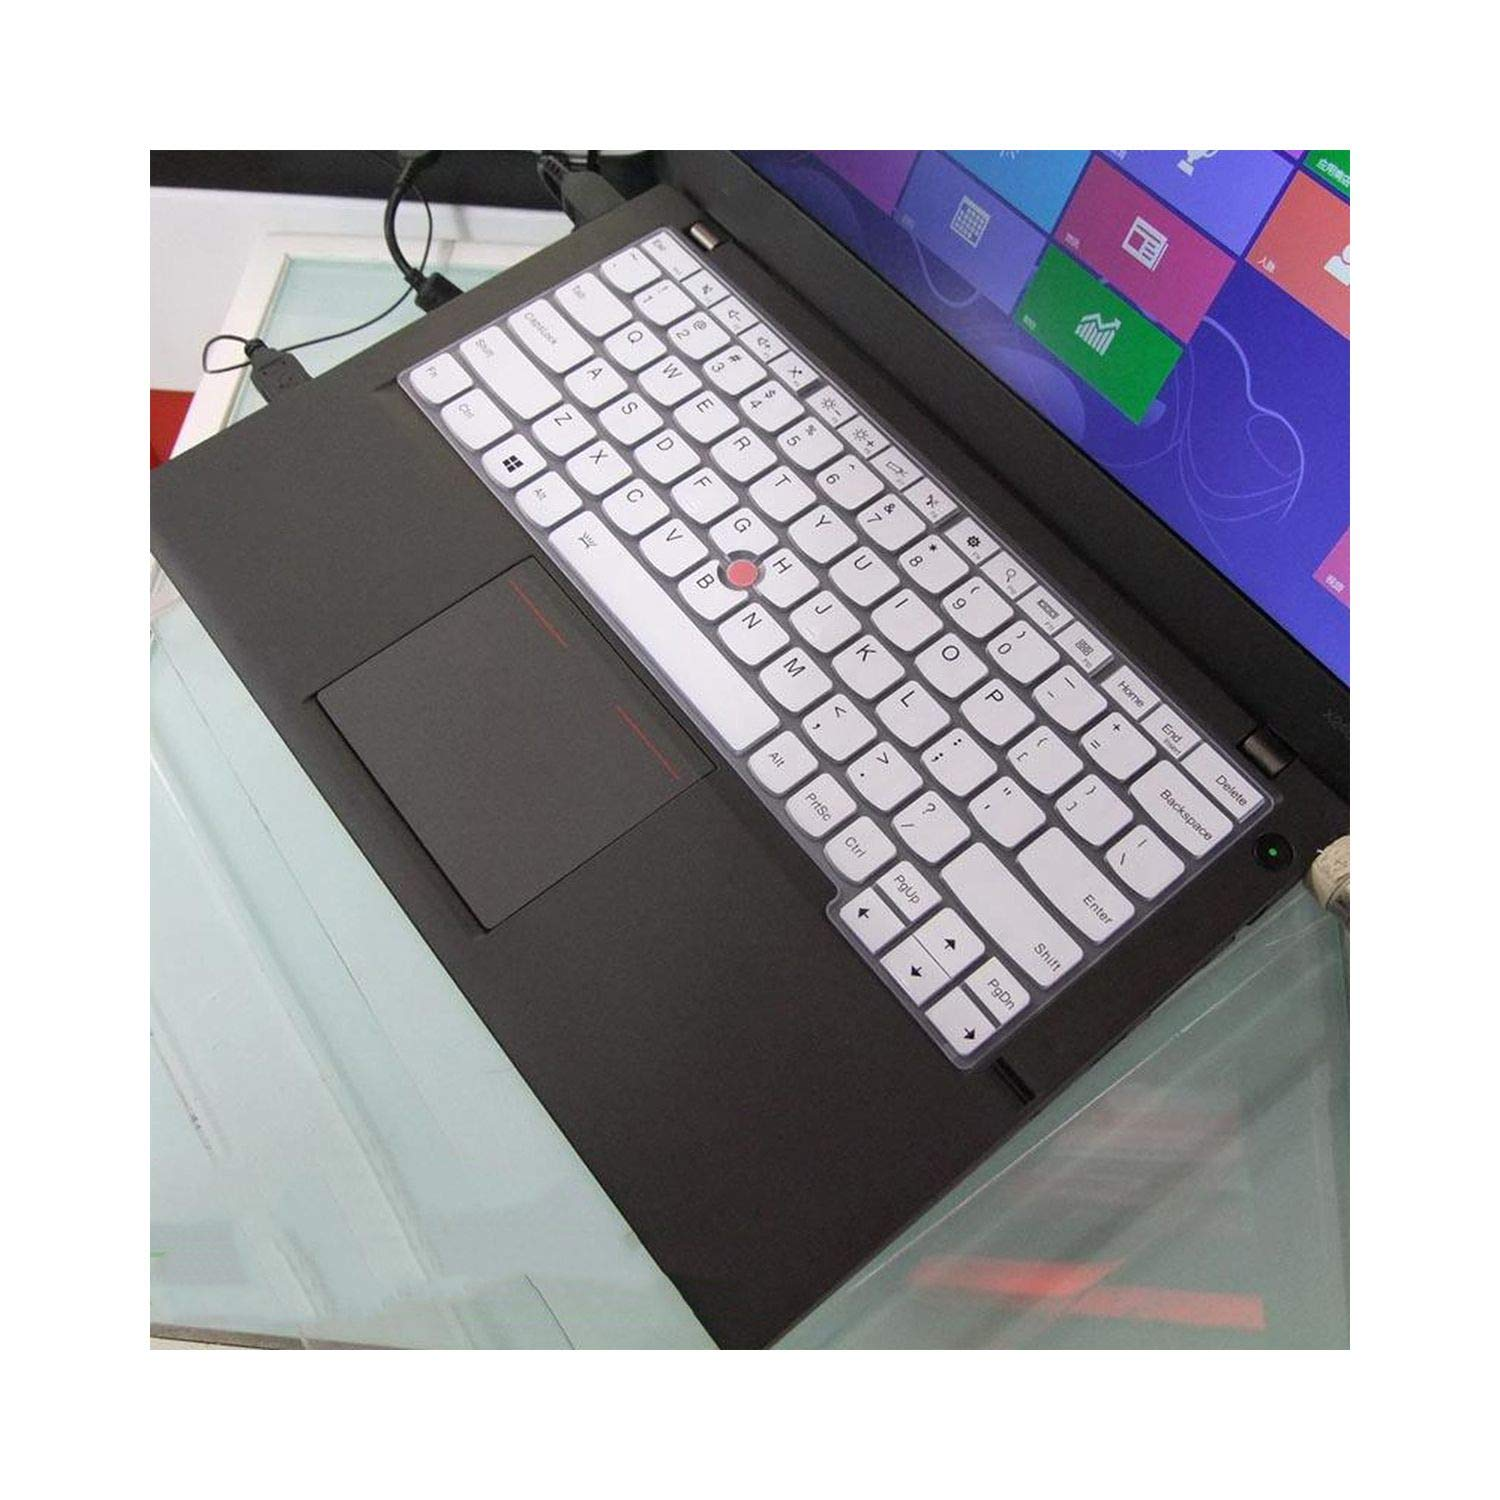 Amazon.com: Keyboard Cover Soft Touch Skin for Lenovo Yoga ...